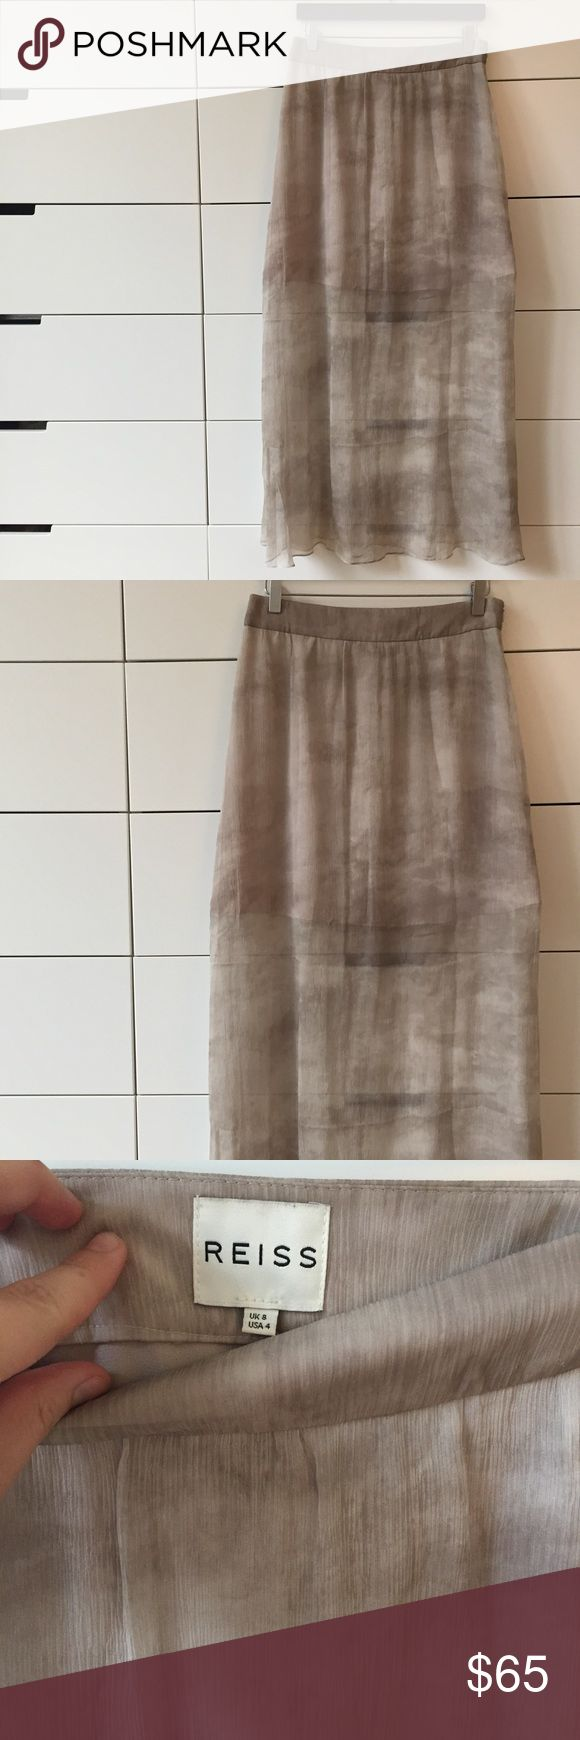 Authentic REISS Skirt 100% Silk, Worn Once Authentic REISS Skirt, 100% Silk, worn once! (No stains etc), warm beige color, paid over $250 (incl tax) Reiss Skirts Maxi